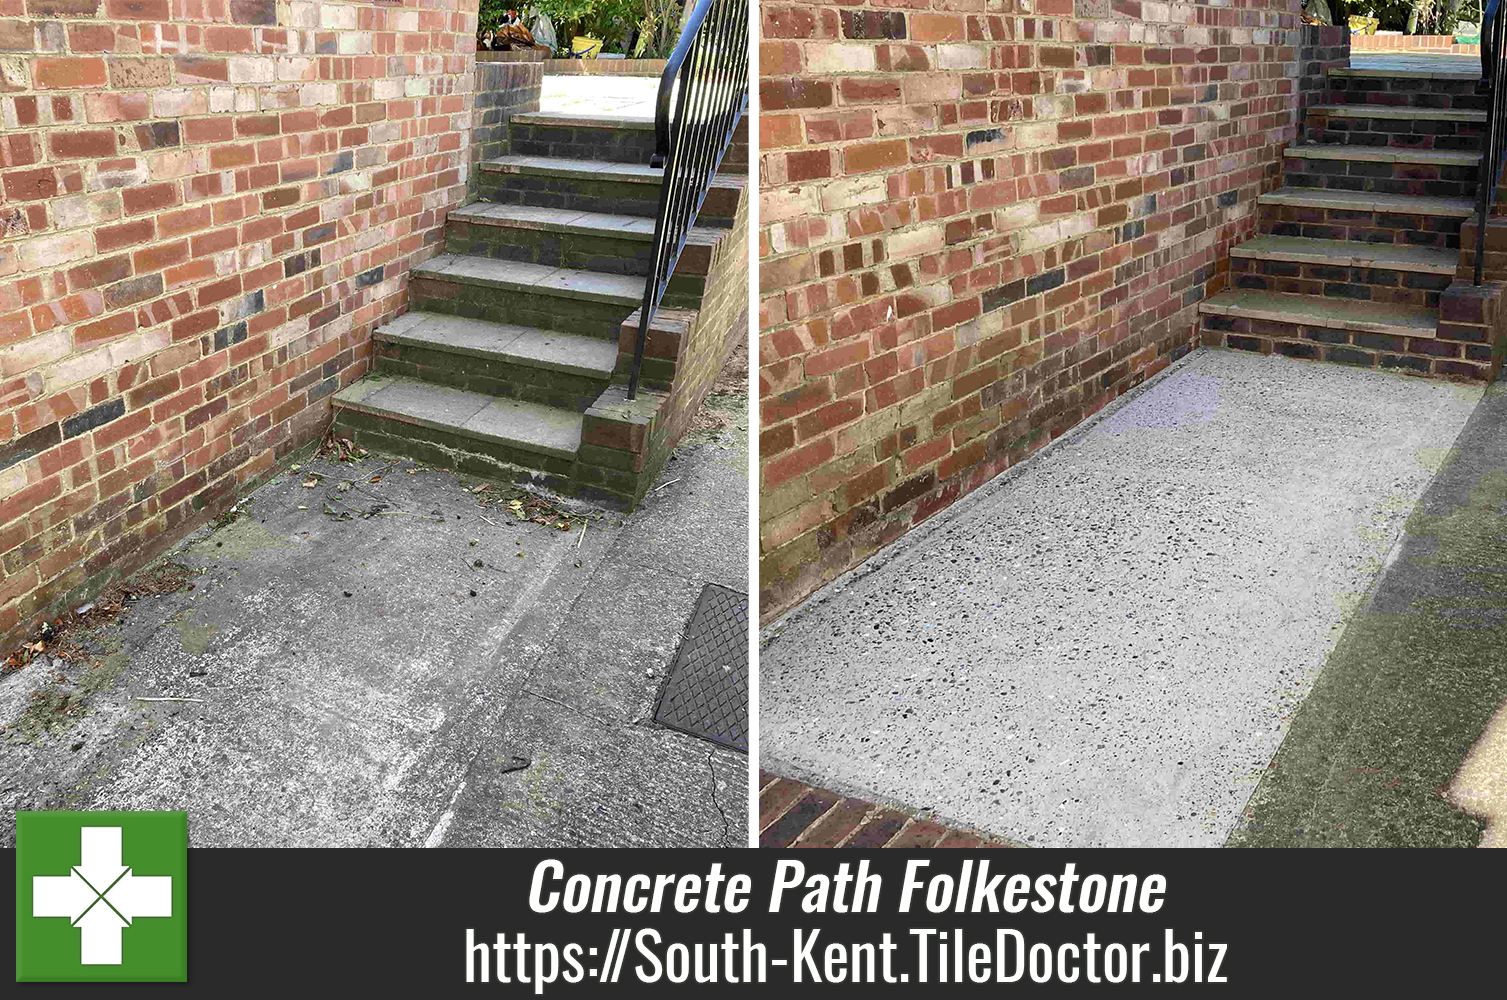 Cleaning Concrete Paving and Steps in Folkestone